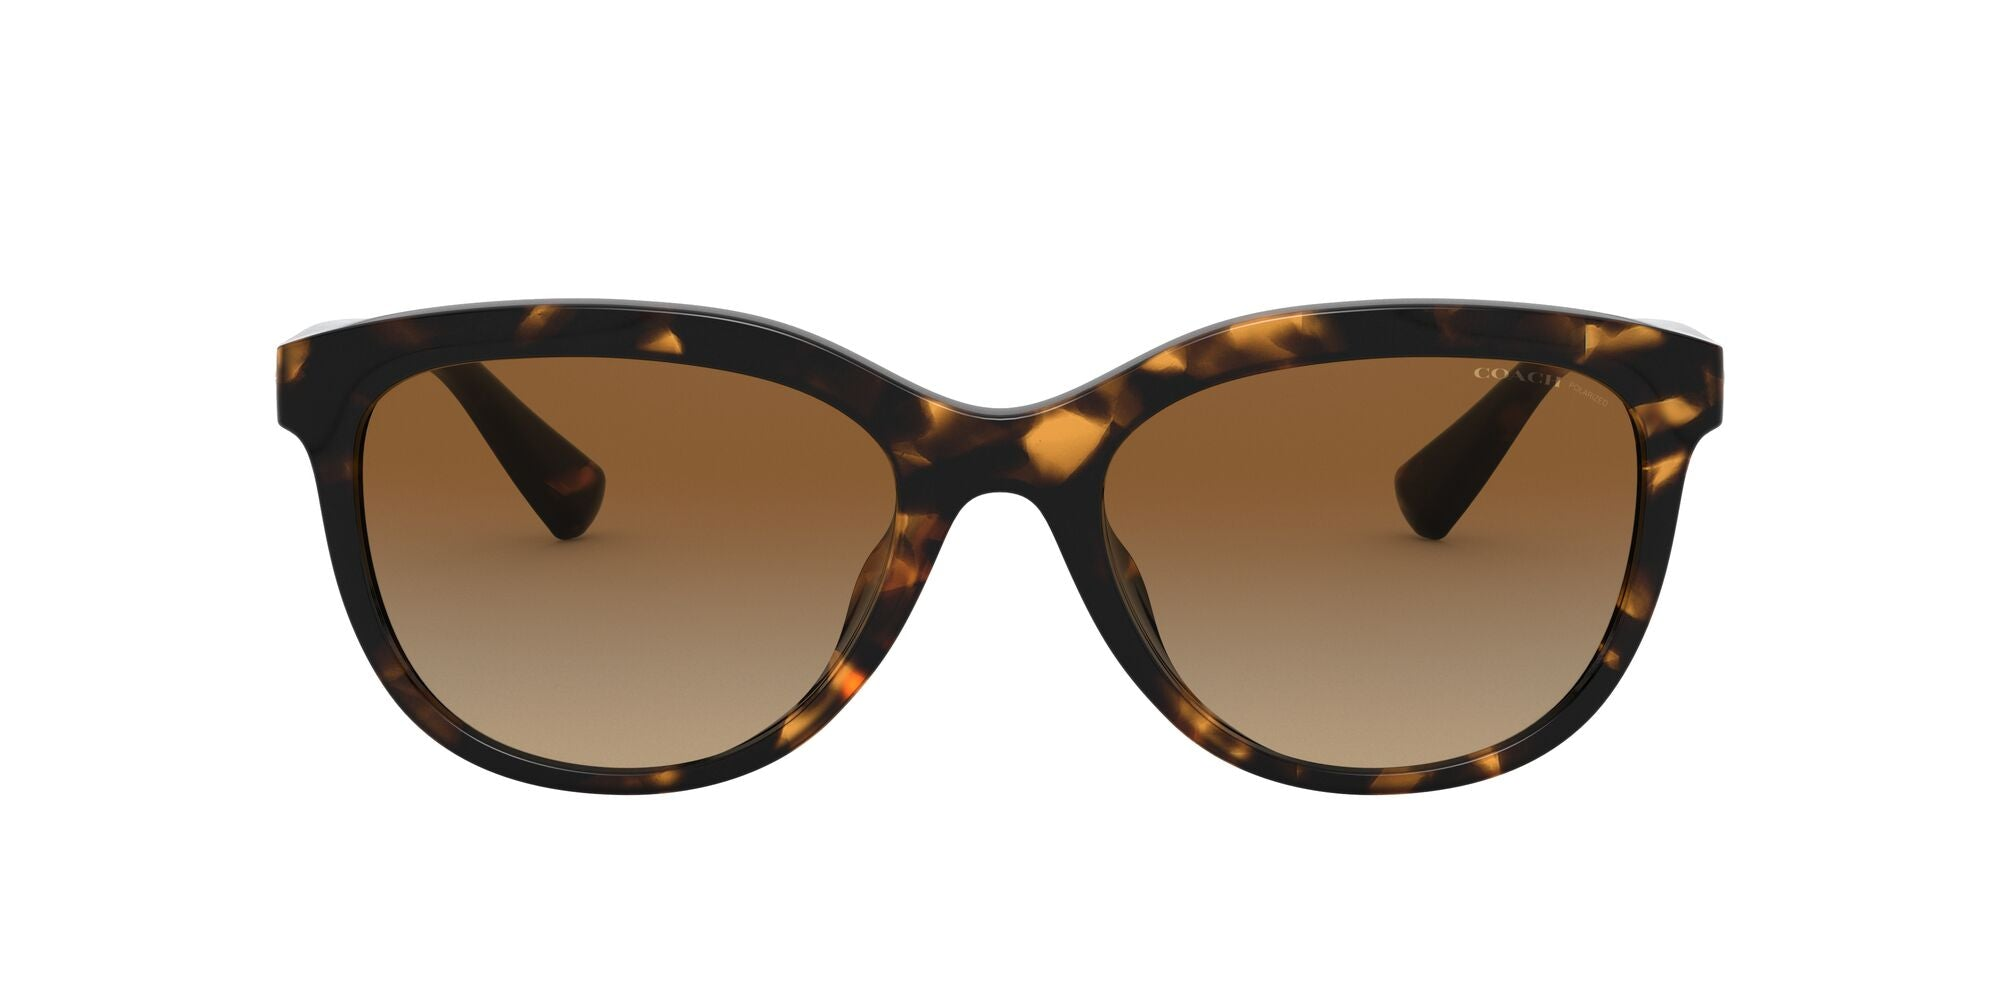 DARK TORTOISE | POLARIZED